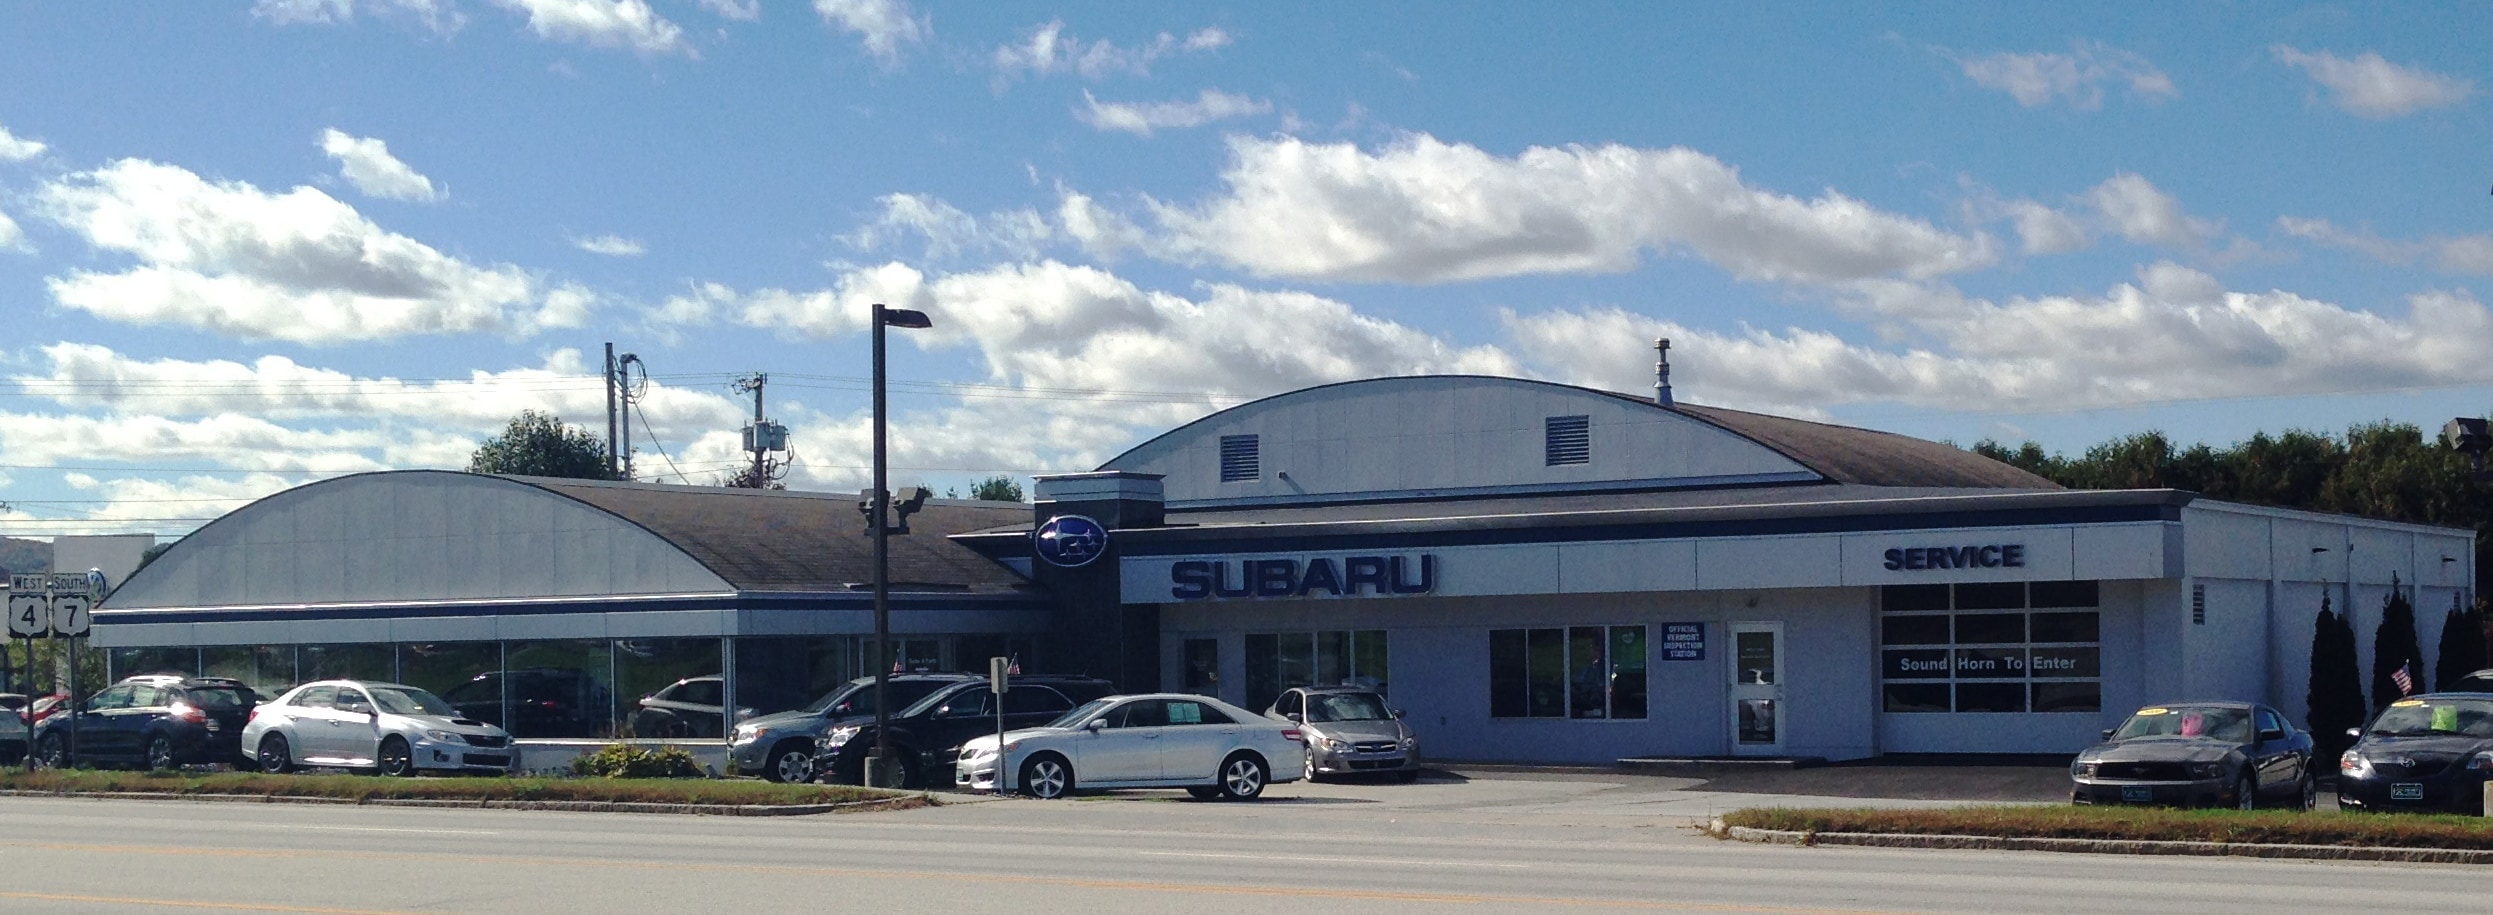 about rutland subaru new used car dealership in rutland serving middlebury bennington. Black Bedroom Furniture Sets. Home Design Ideas